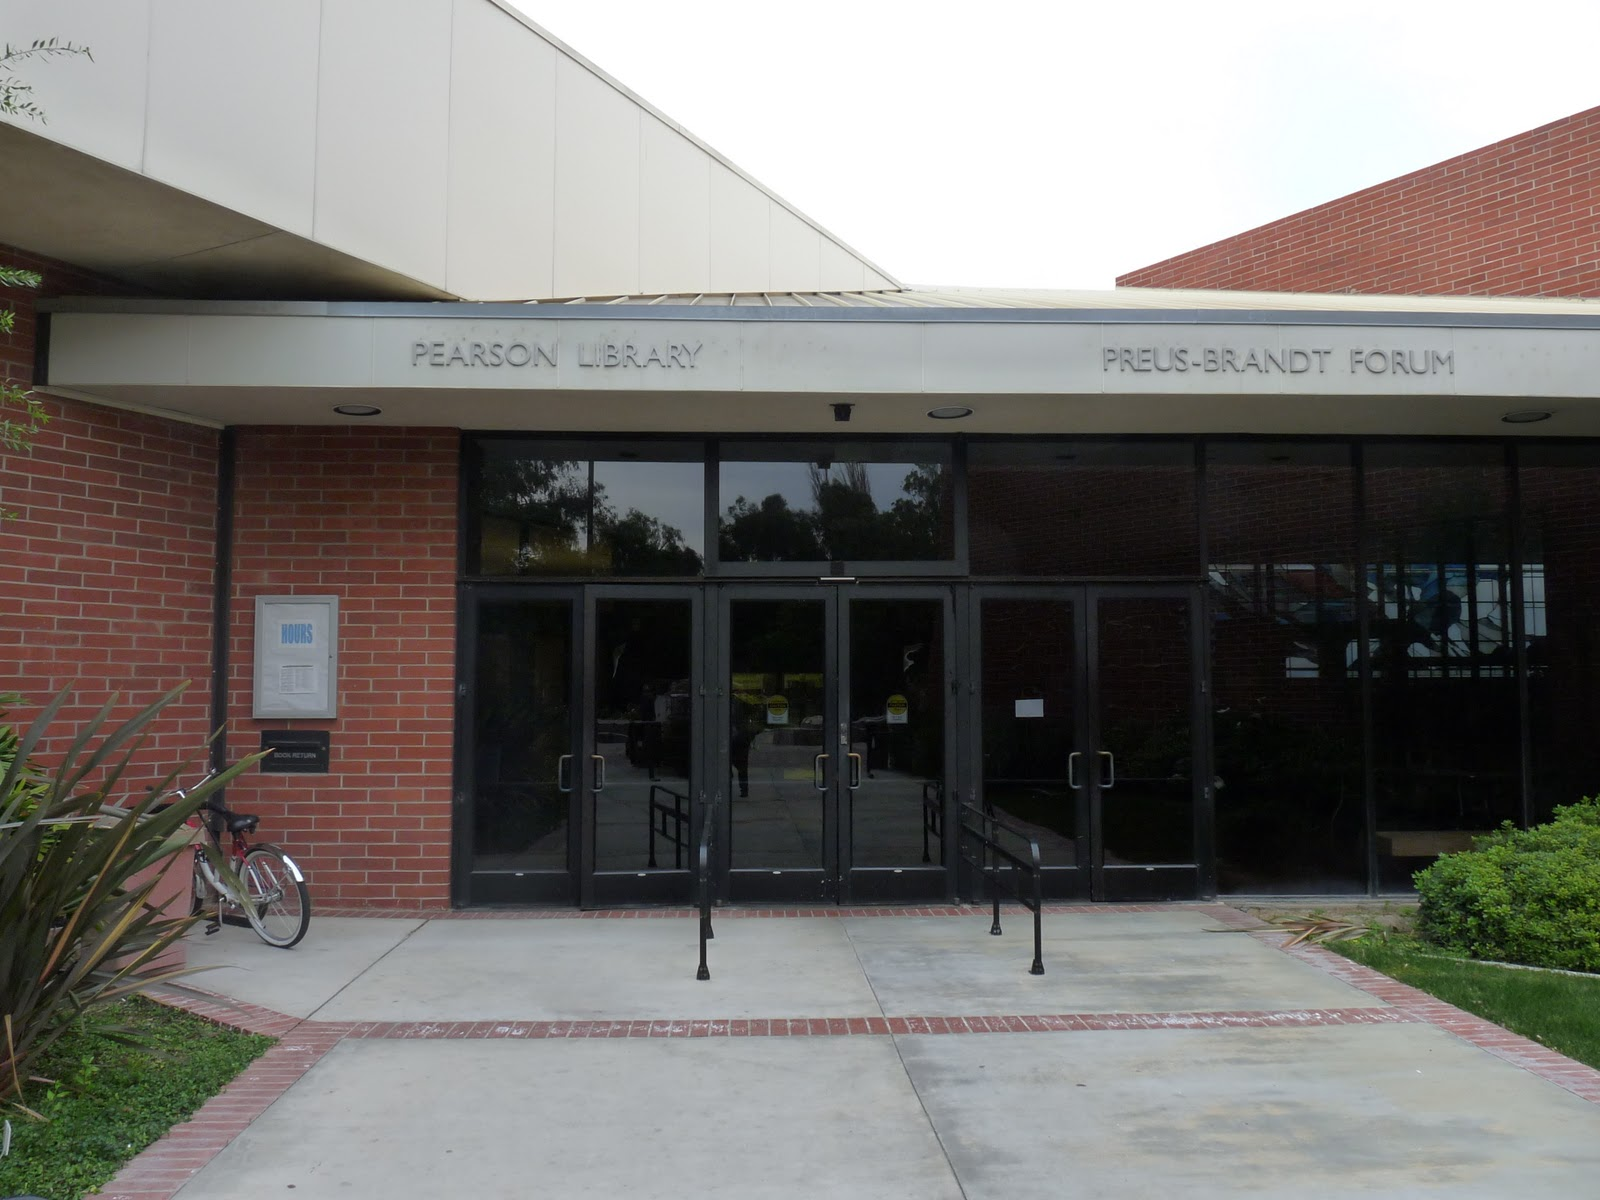 Front view of the Pearson Library